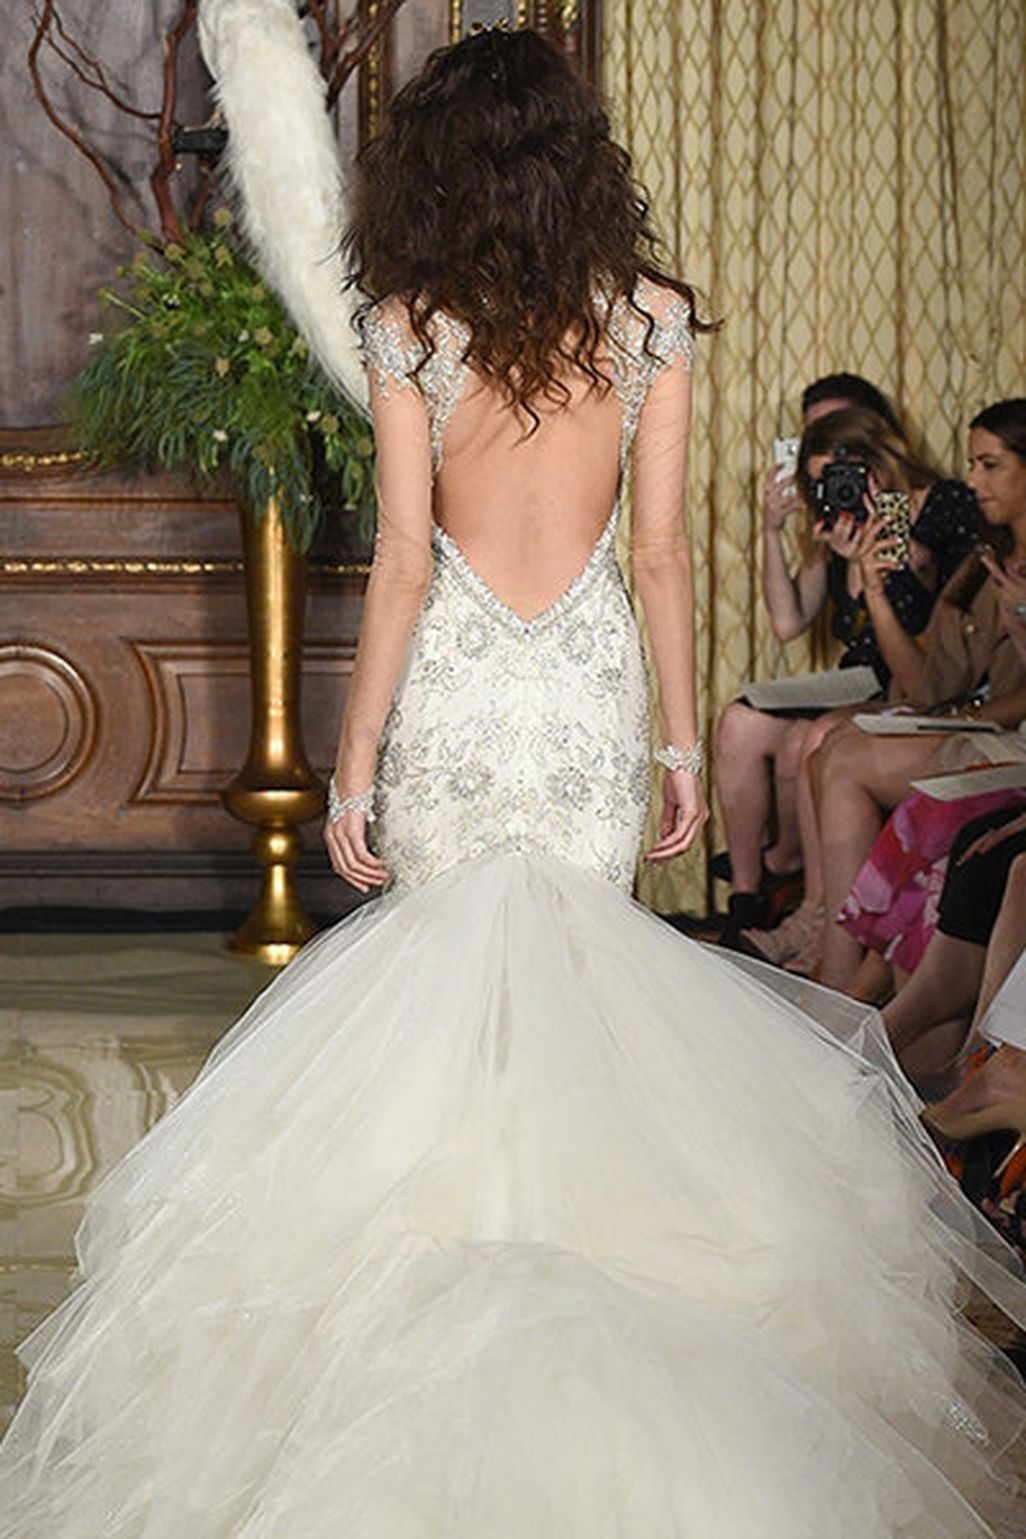 Cool vintage backless wedding dress trends ideas more at